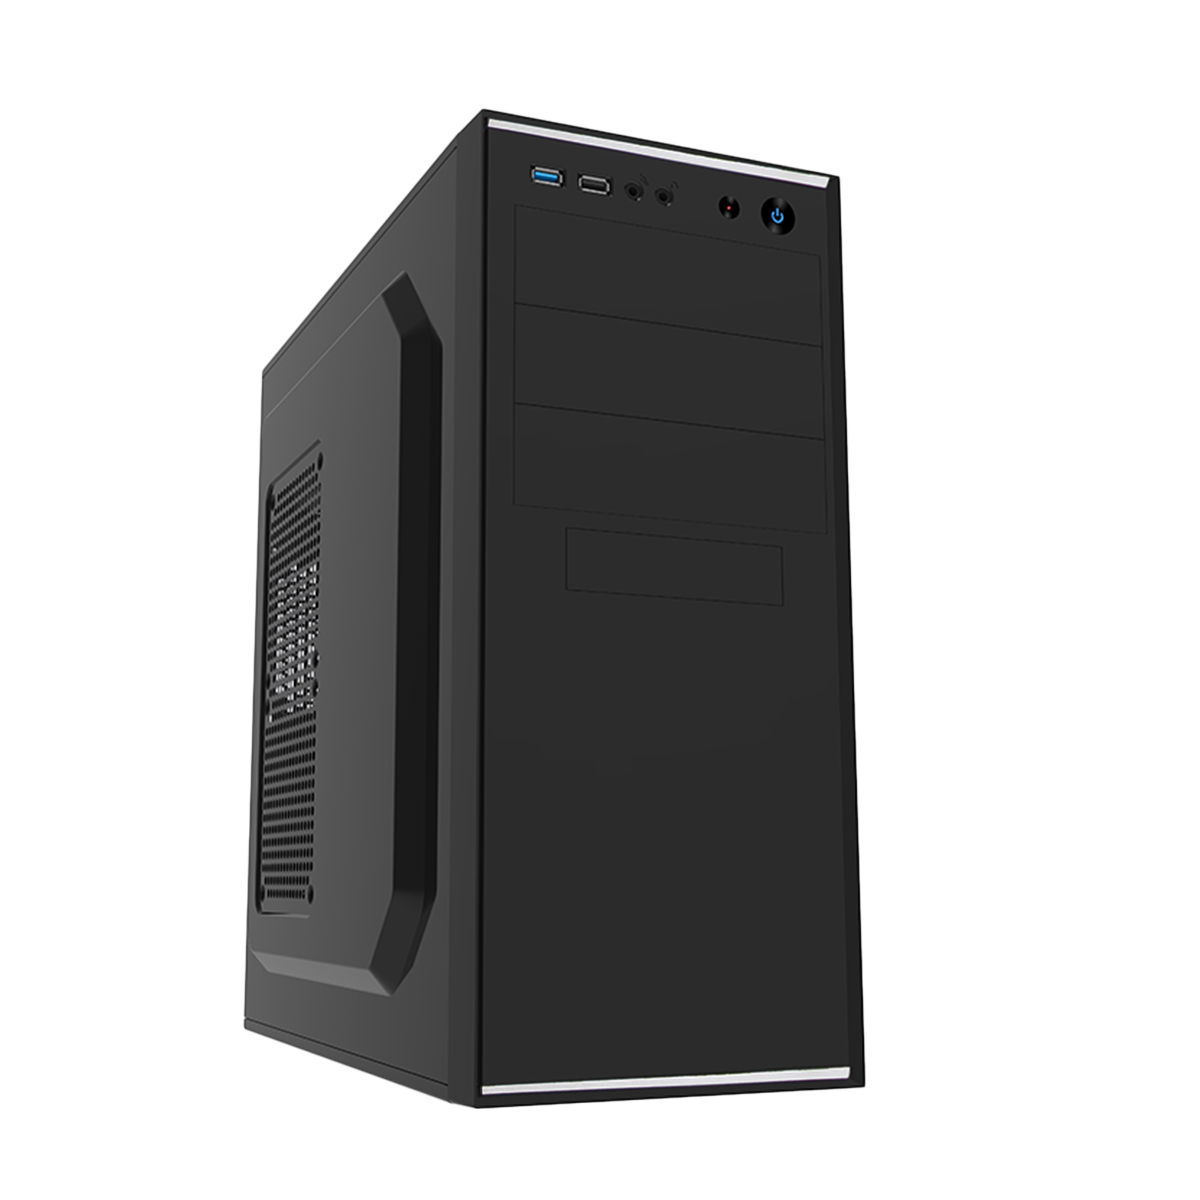 HST Jet Stream G5400 Dual Core Customisable Multimedia PC